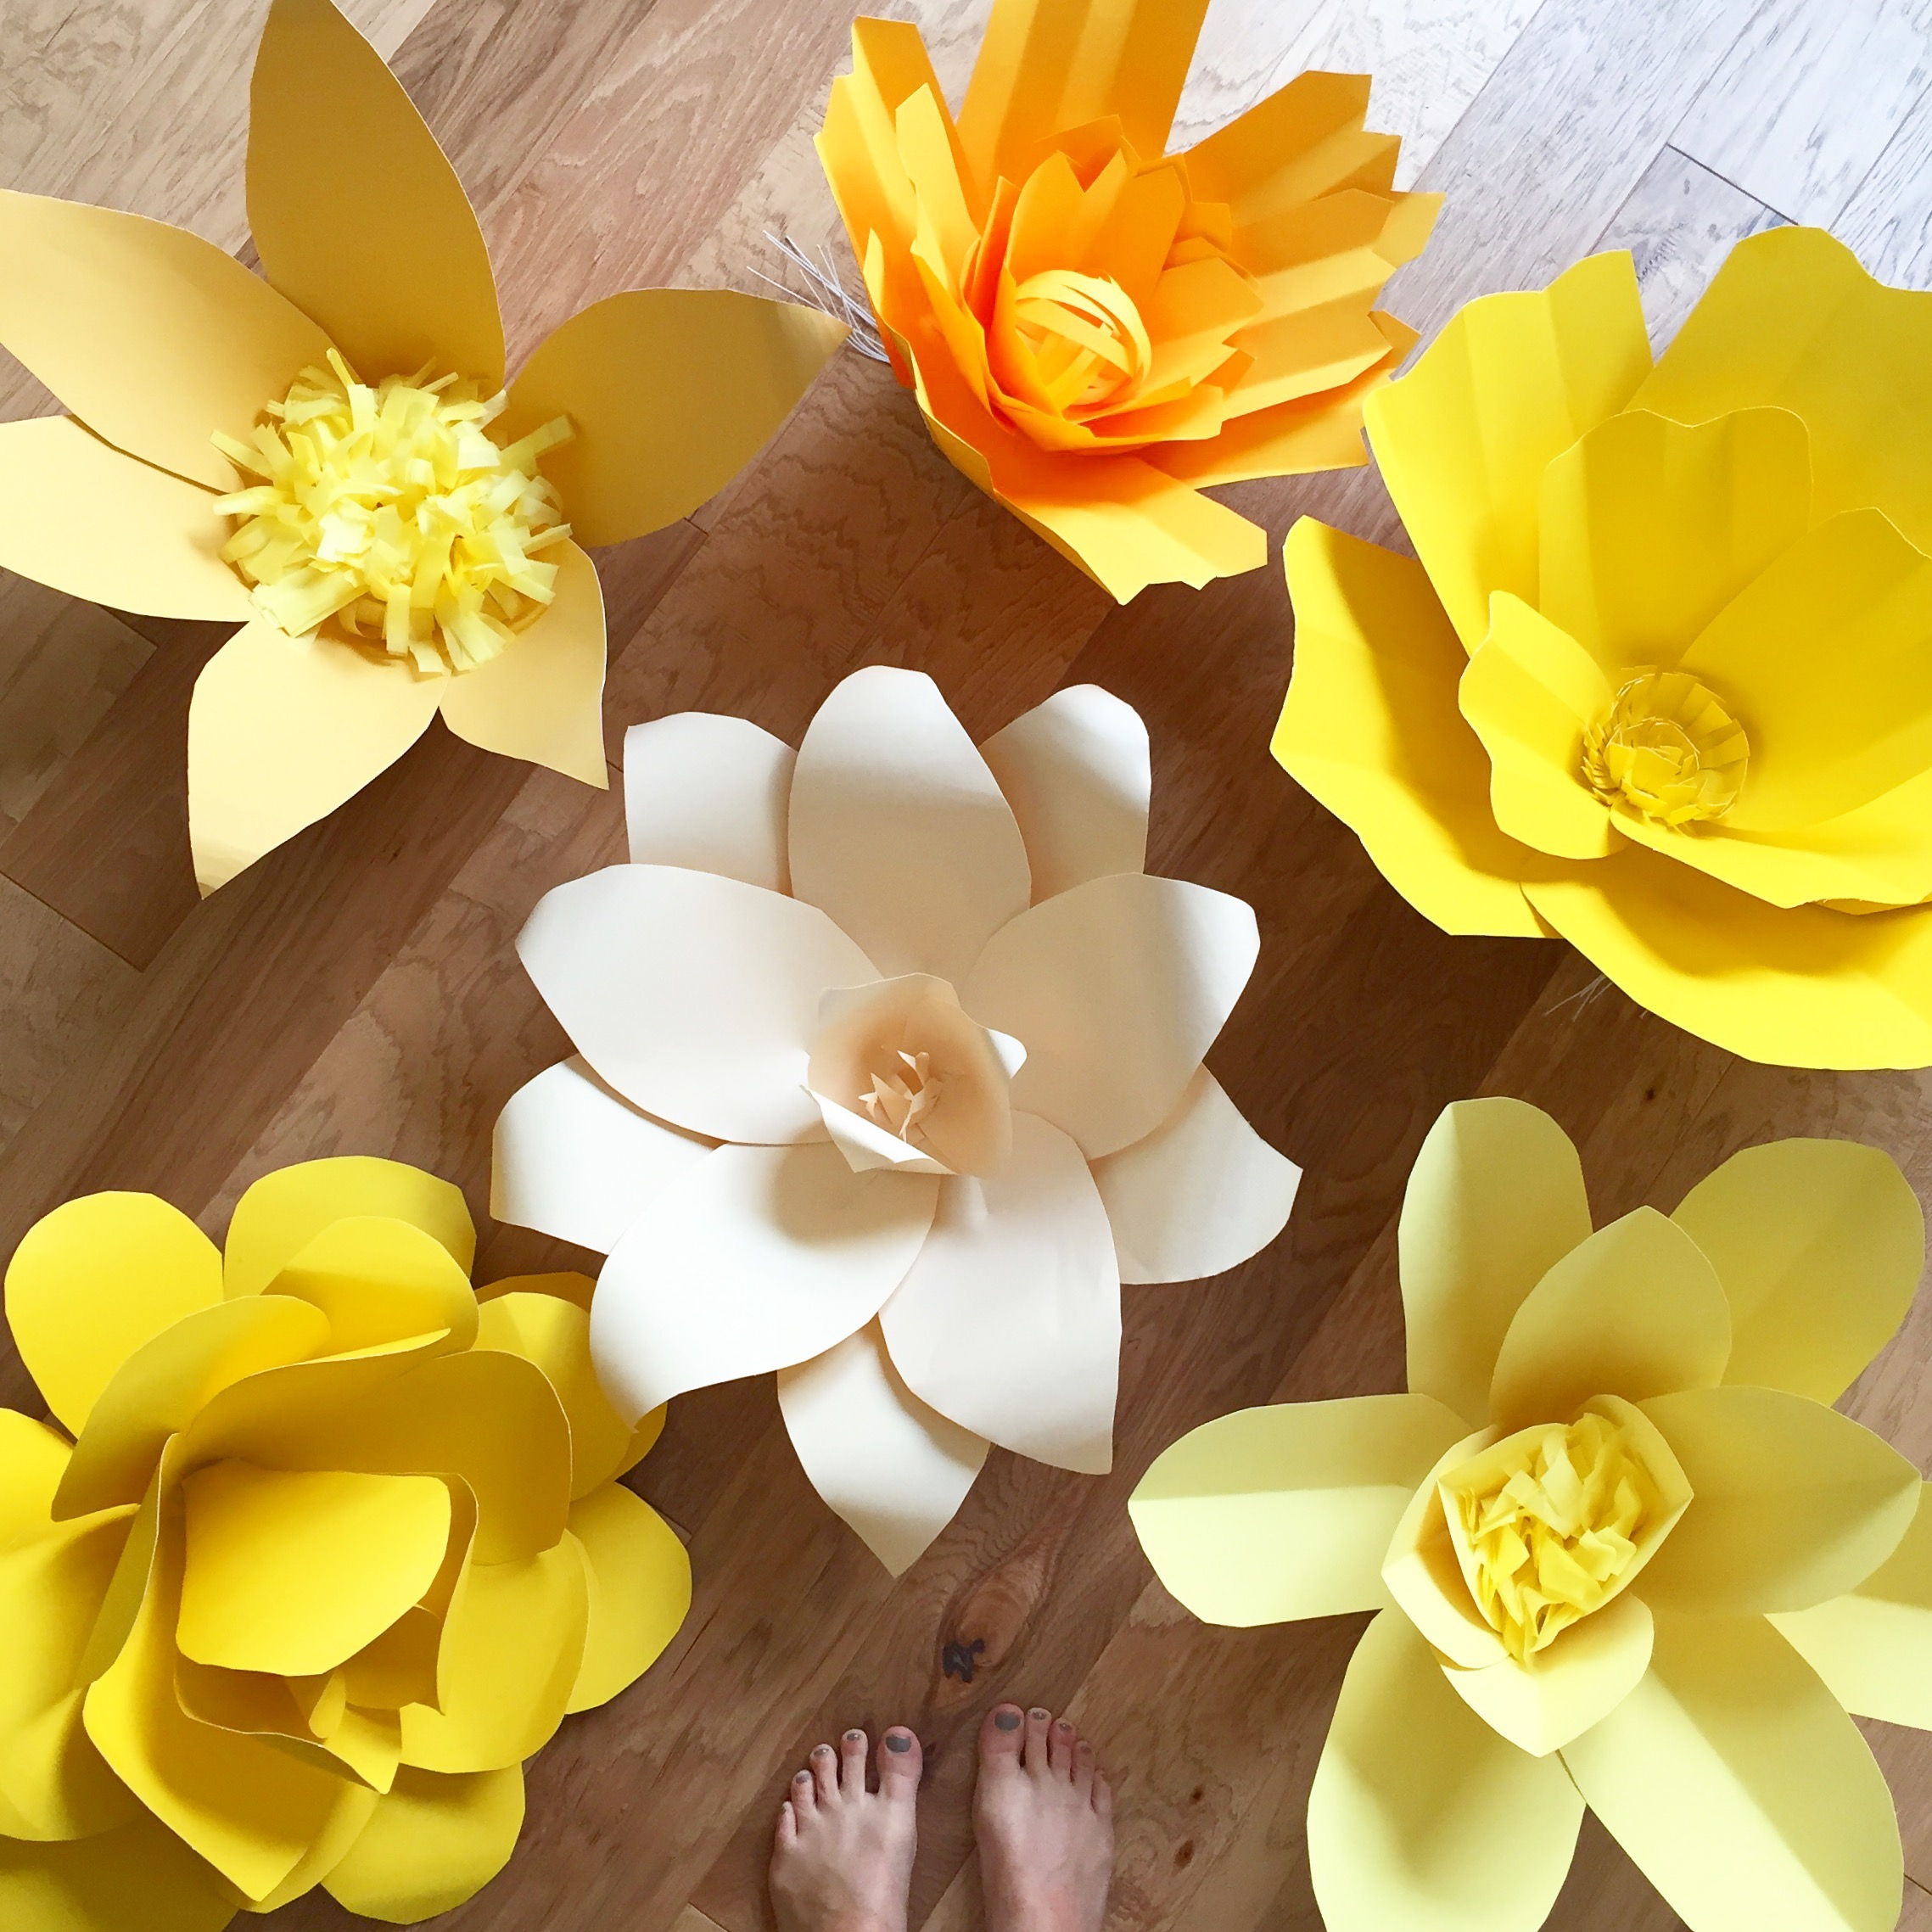 Diy Giant Paper Flower Arch Live Free Creative Co